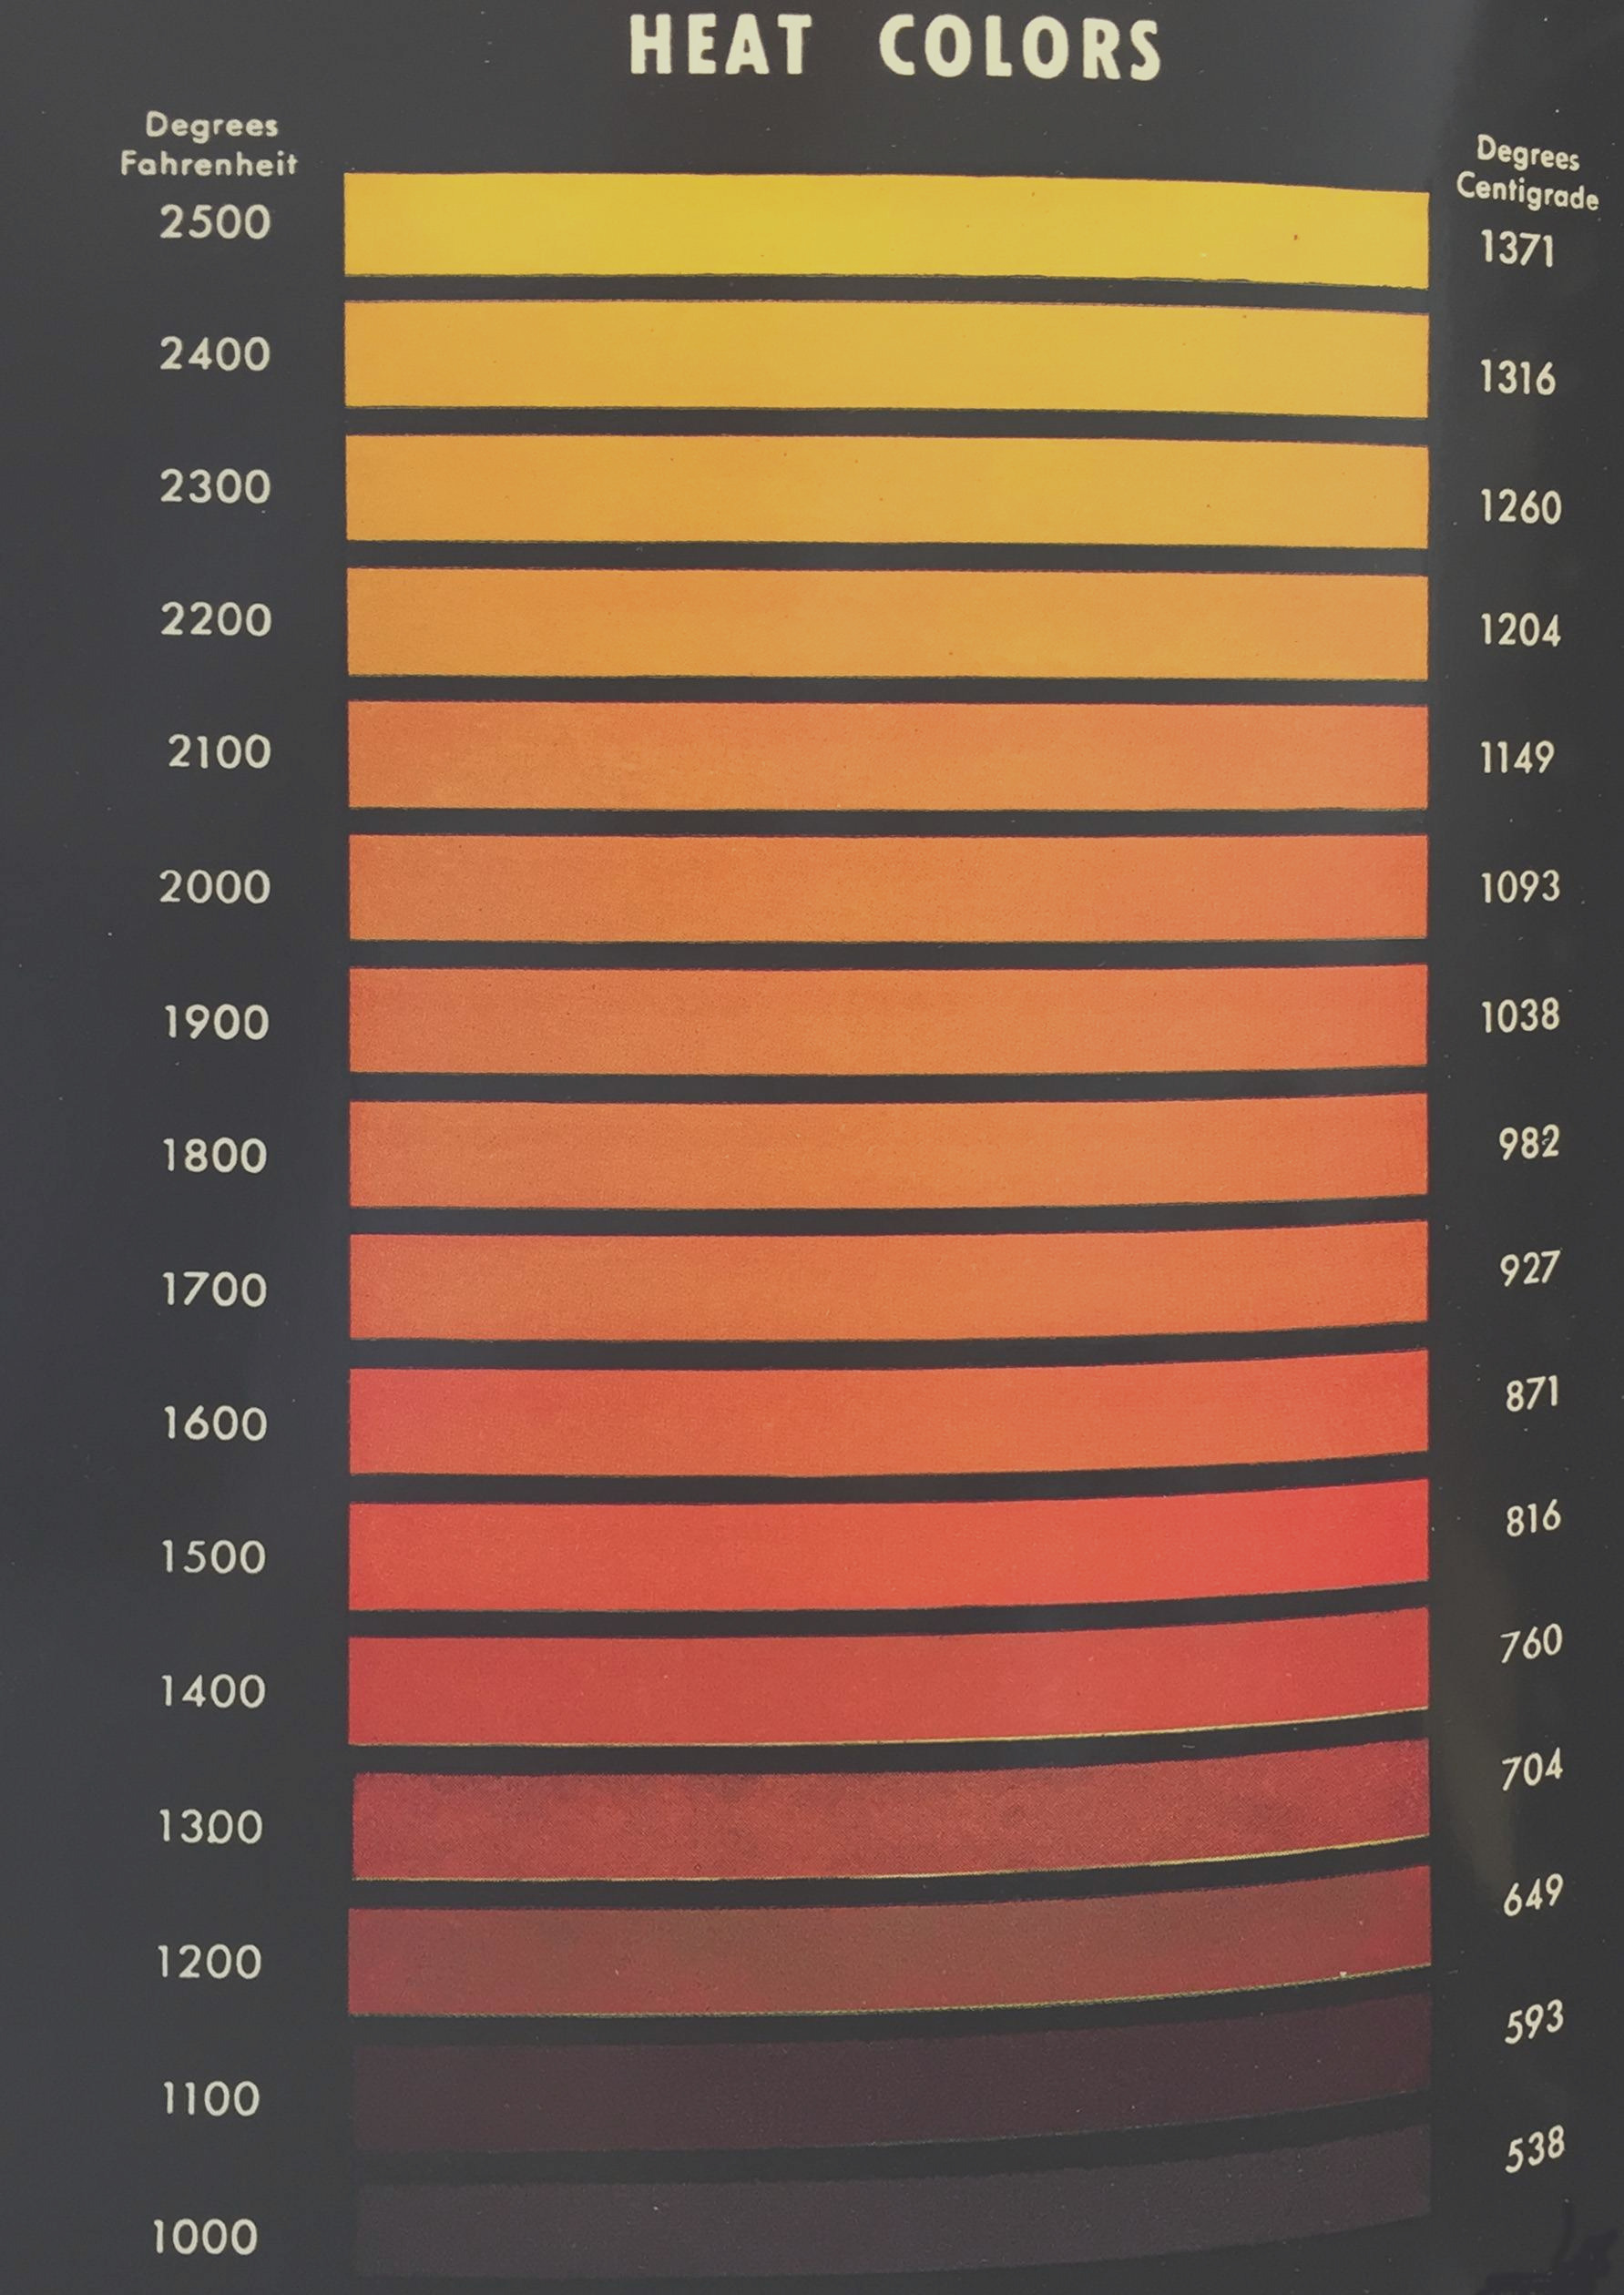 how heated metal colors relate do black body color at the same temperature